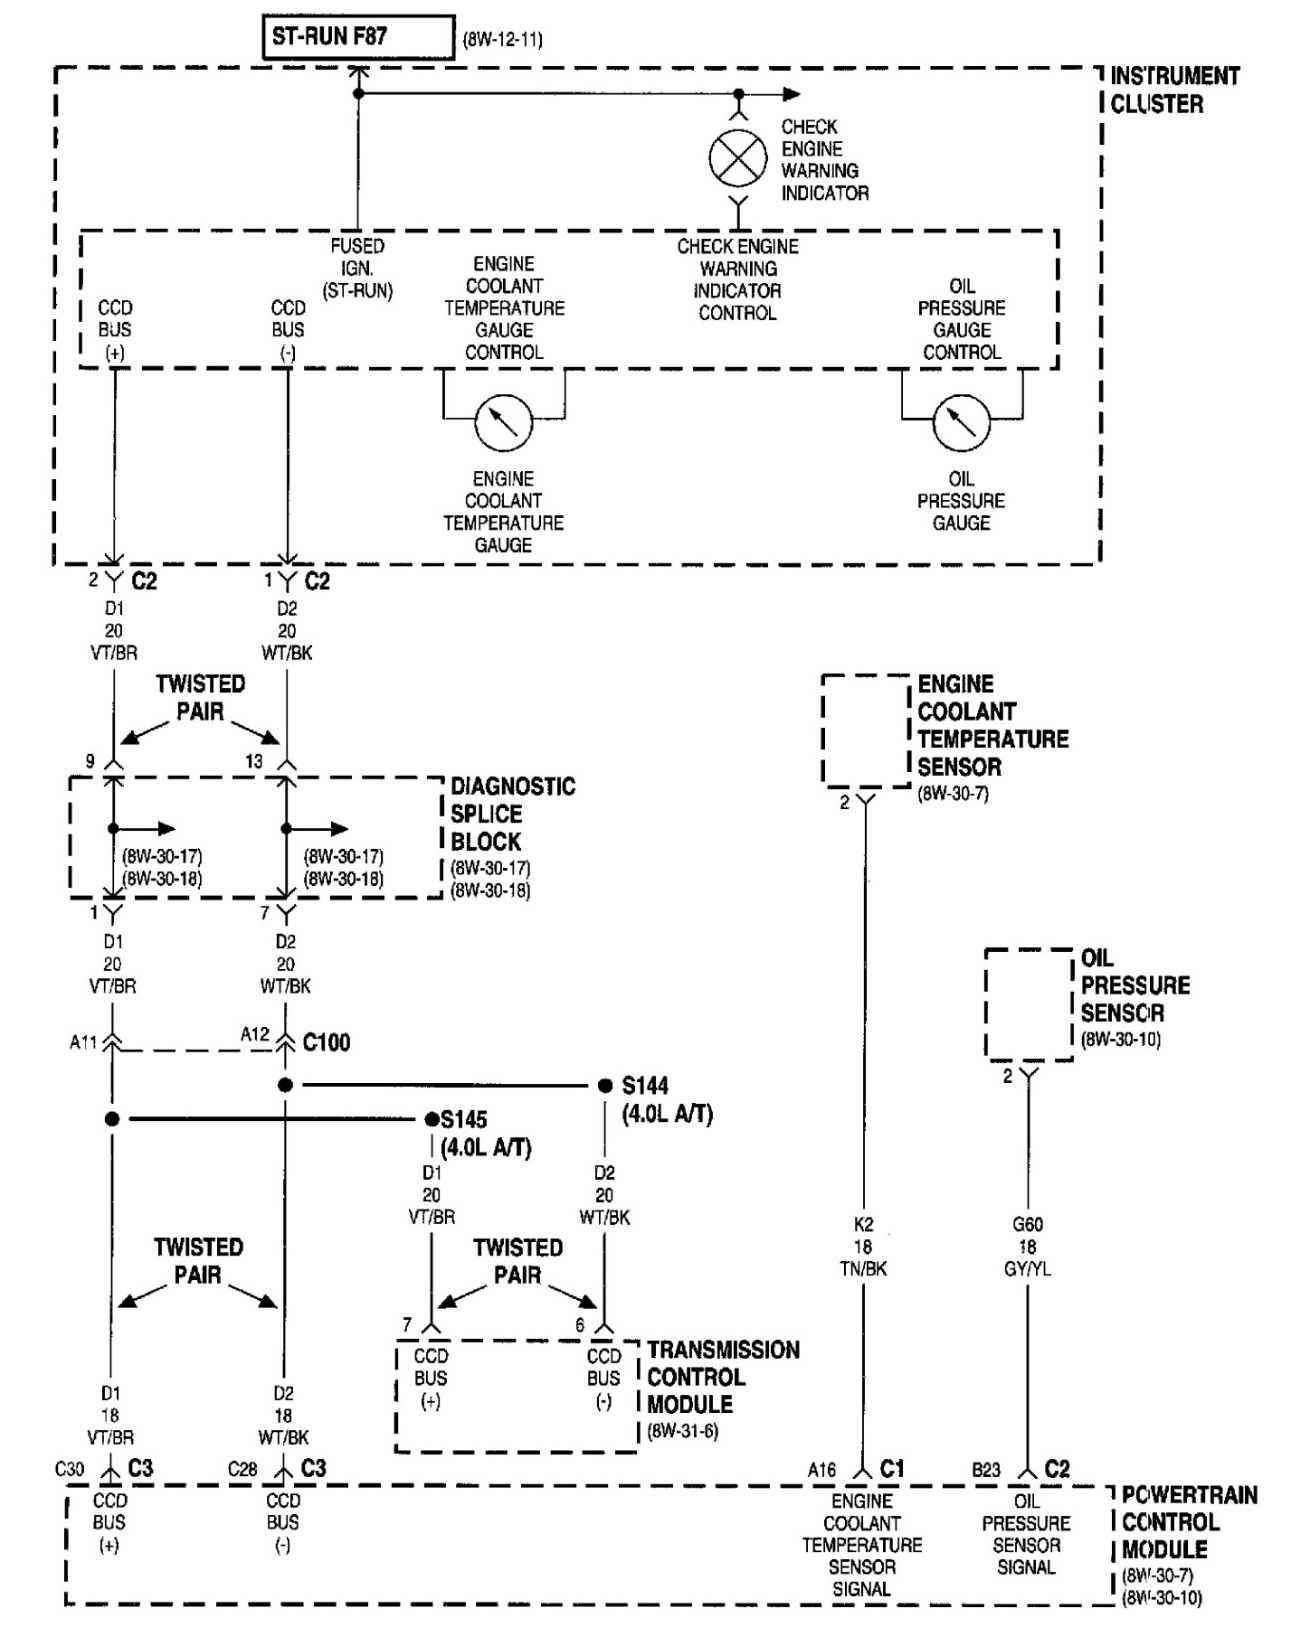 car wiring diagrams uk the car has cluster problem, can you please send a wiring ... images of house wiring diagrams uk wire diagram #3